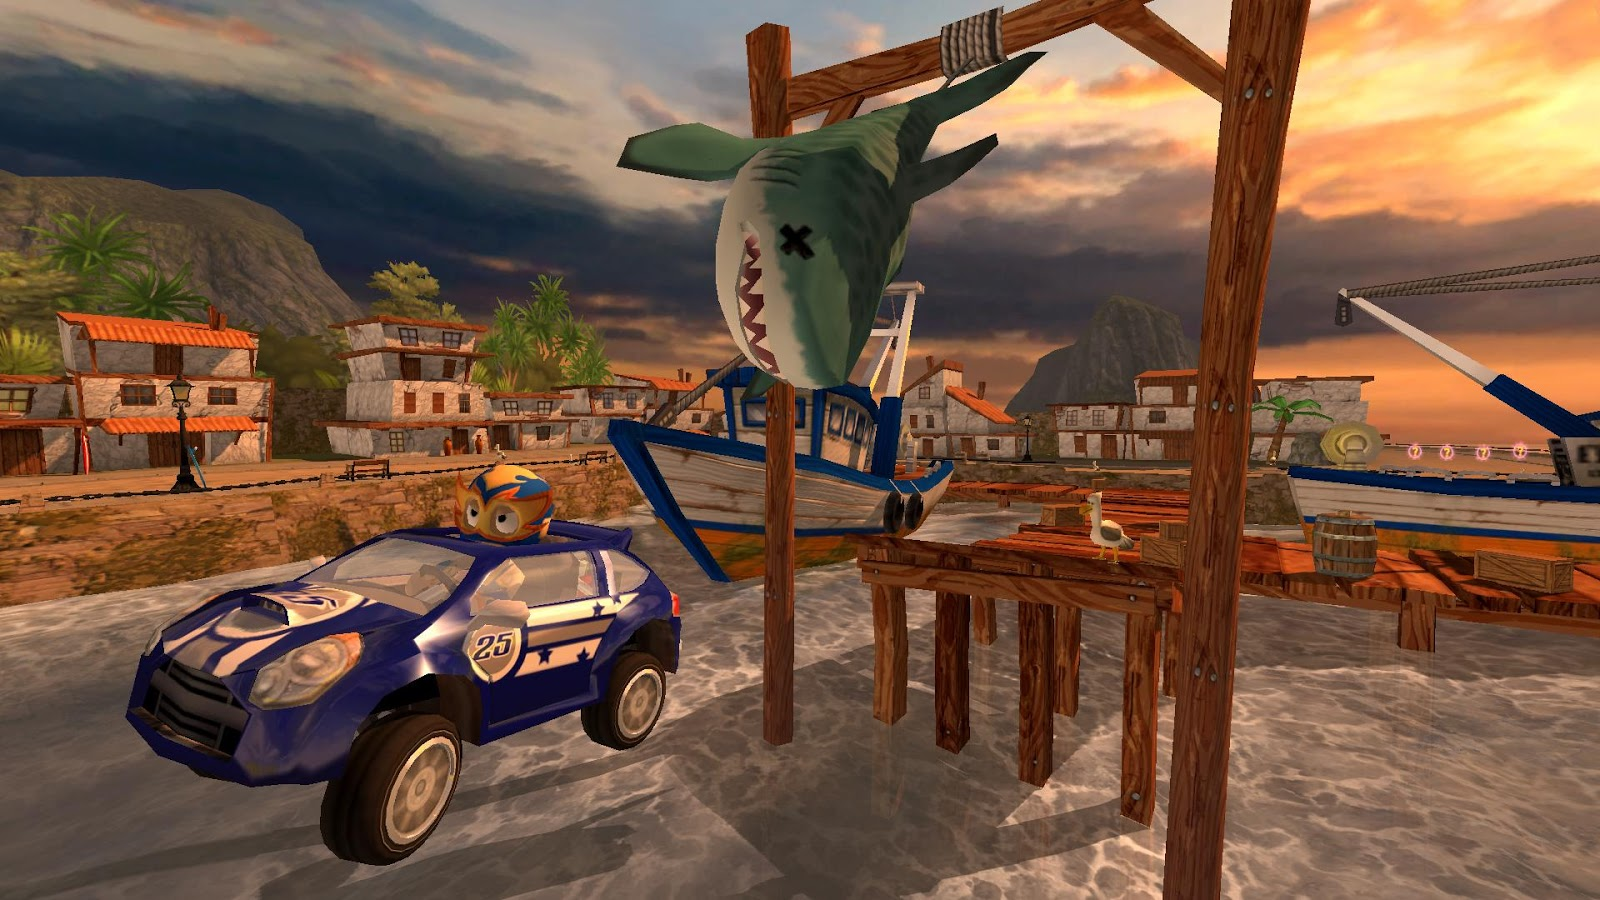 Beach Buggy Racing images5